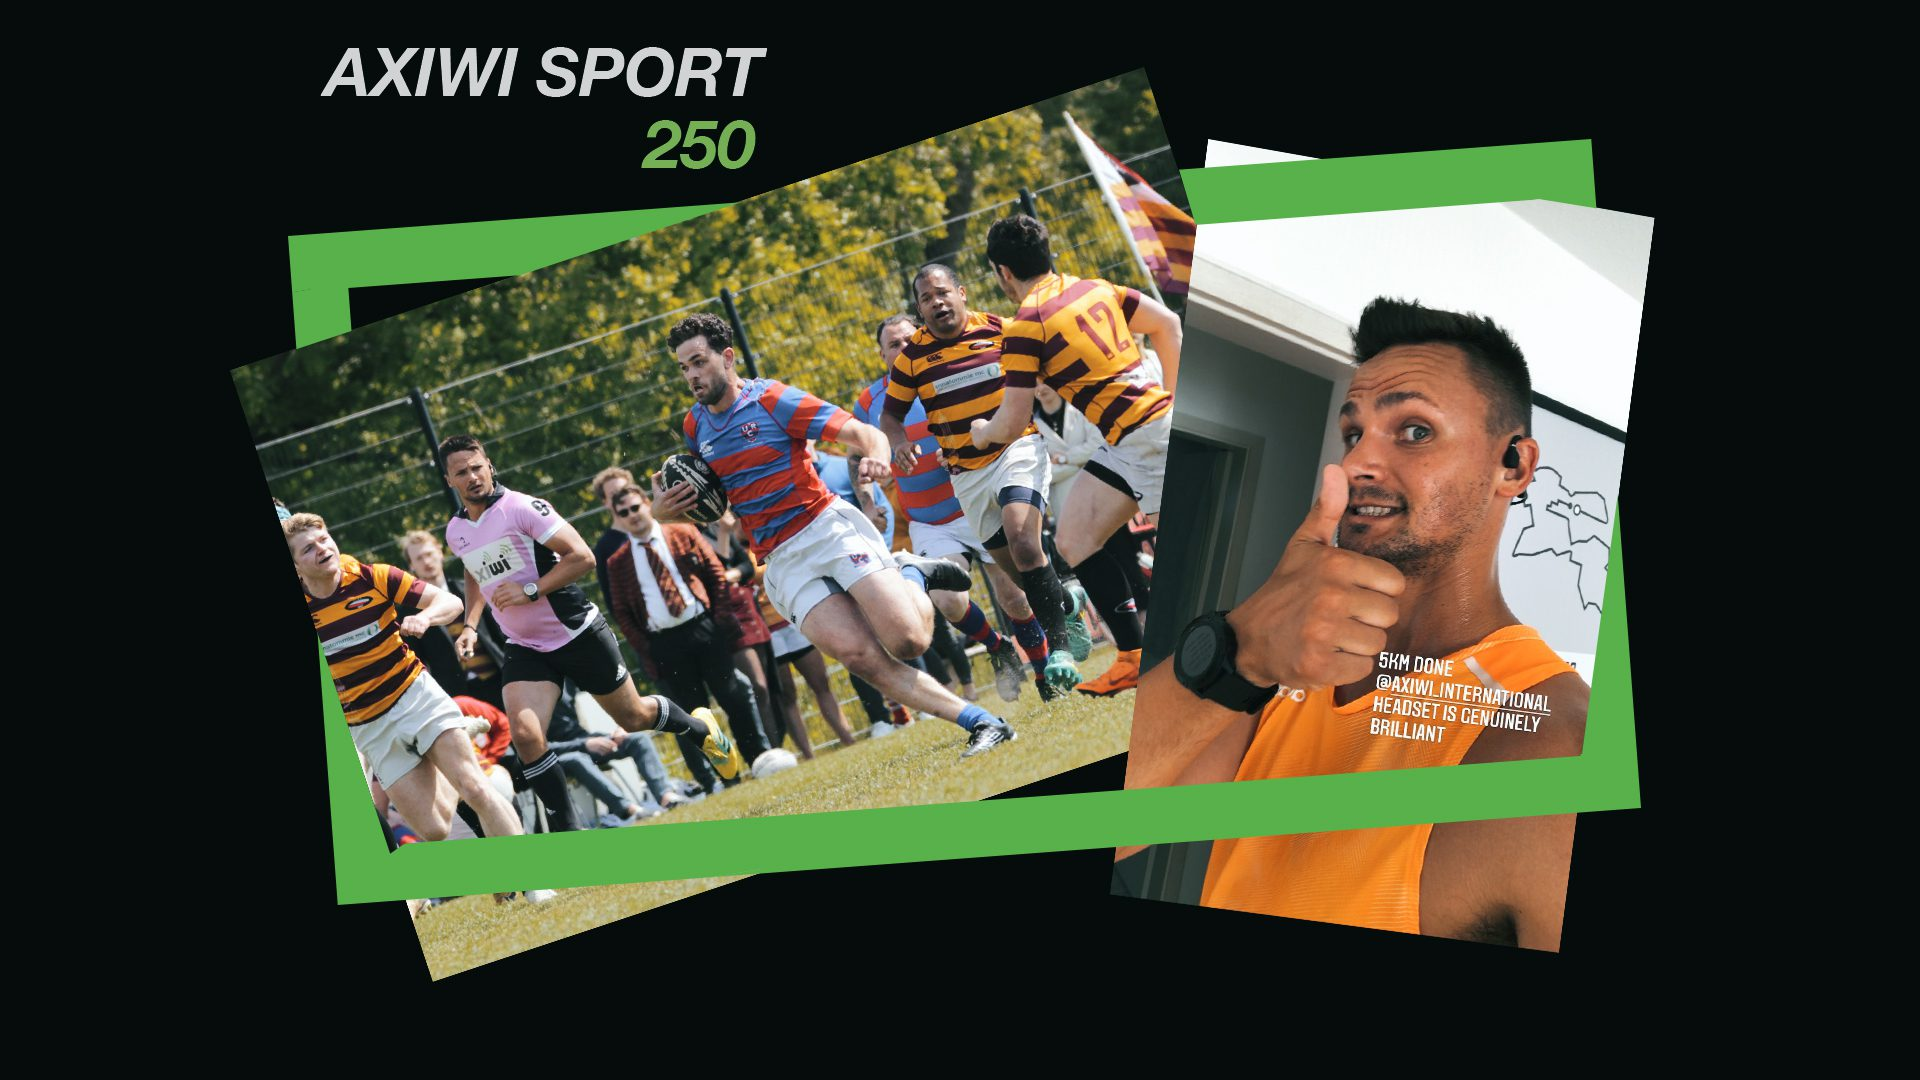 jonathan-teppler-axiwi-sport-250-exercising-referee-rugby